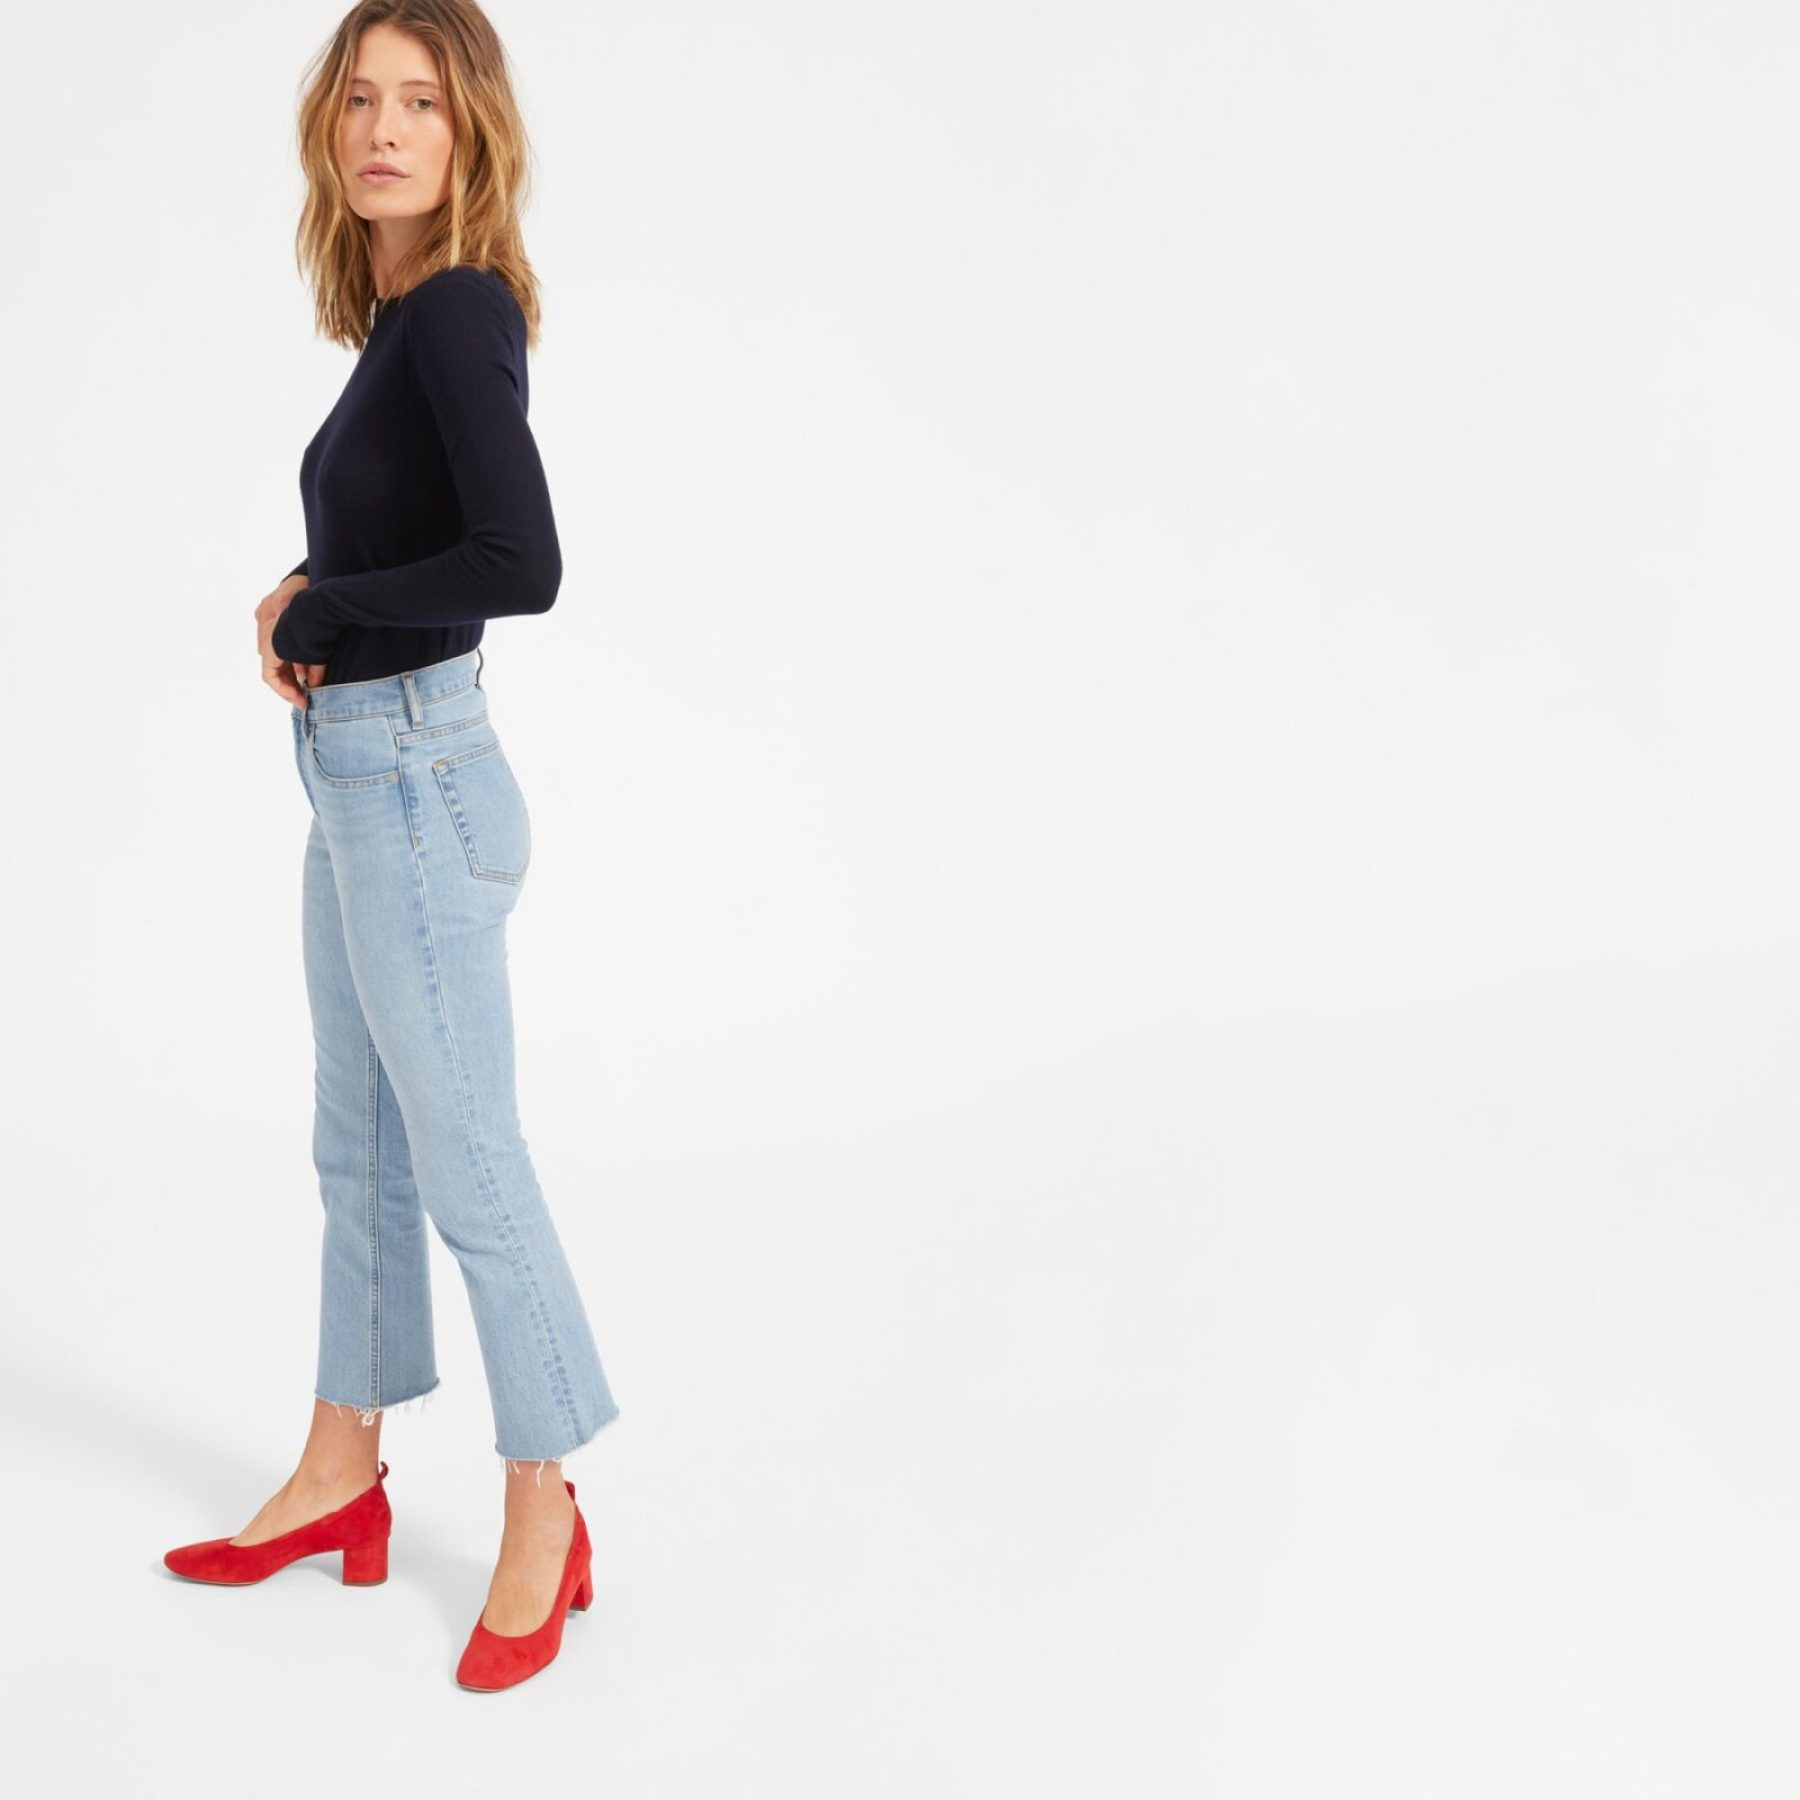 Everlane Kick Crop Jeans